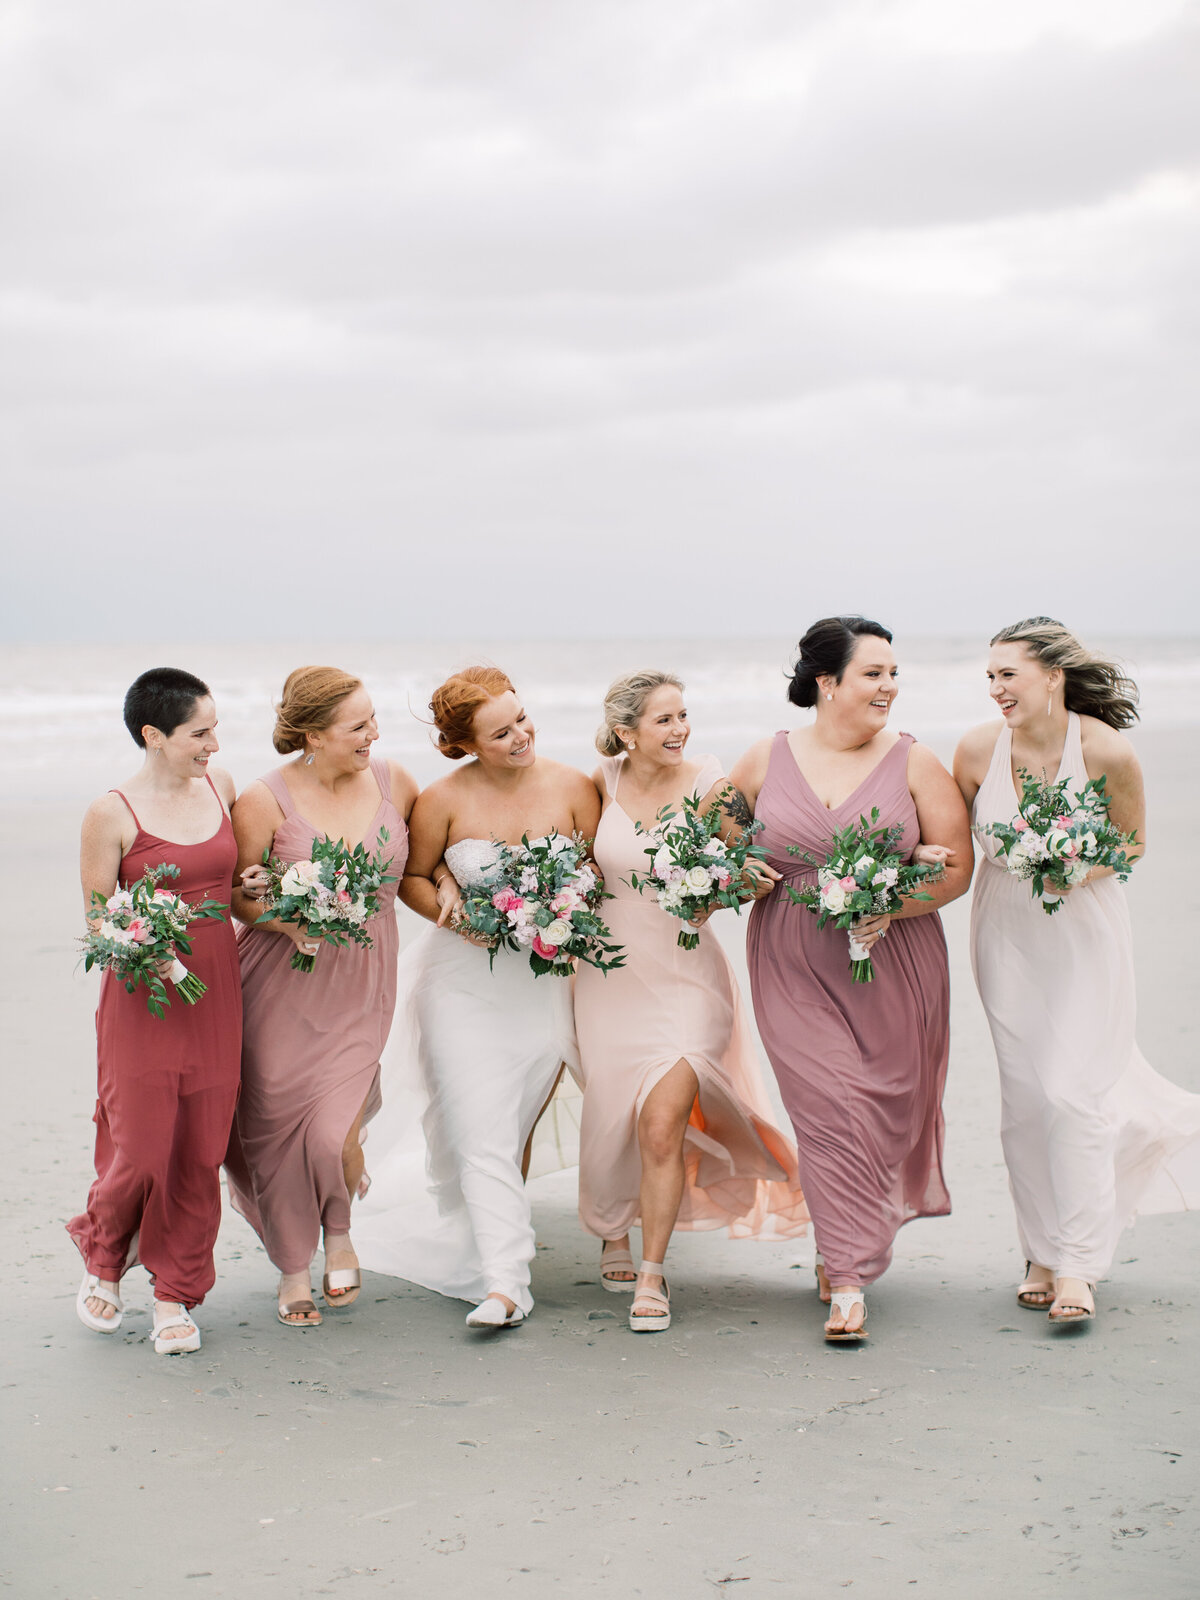 Charleston Wedding Photographer | Beaufort Wedding Photographer | Savannah Wedding Photographer | Santa Barbara Wedding Photographer | San Luis Obispo Wedding Photographer-24